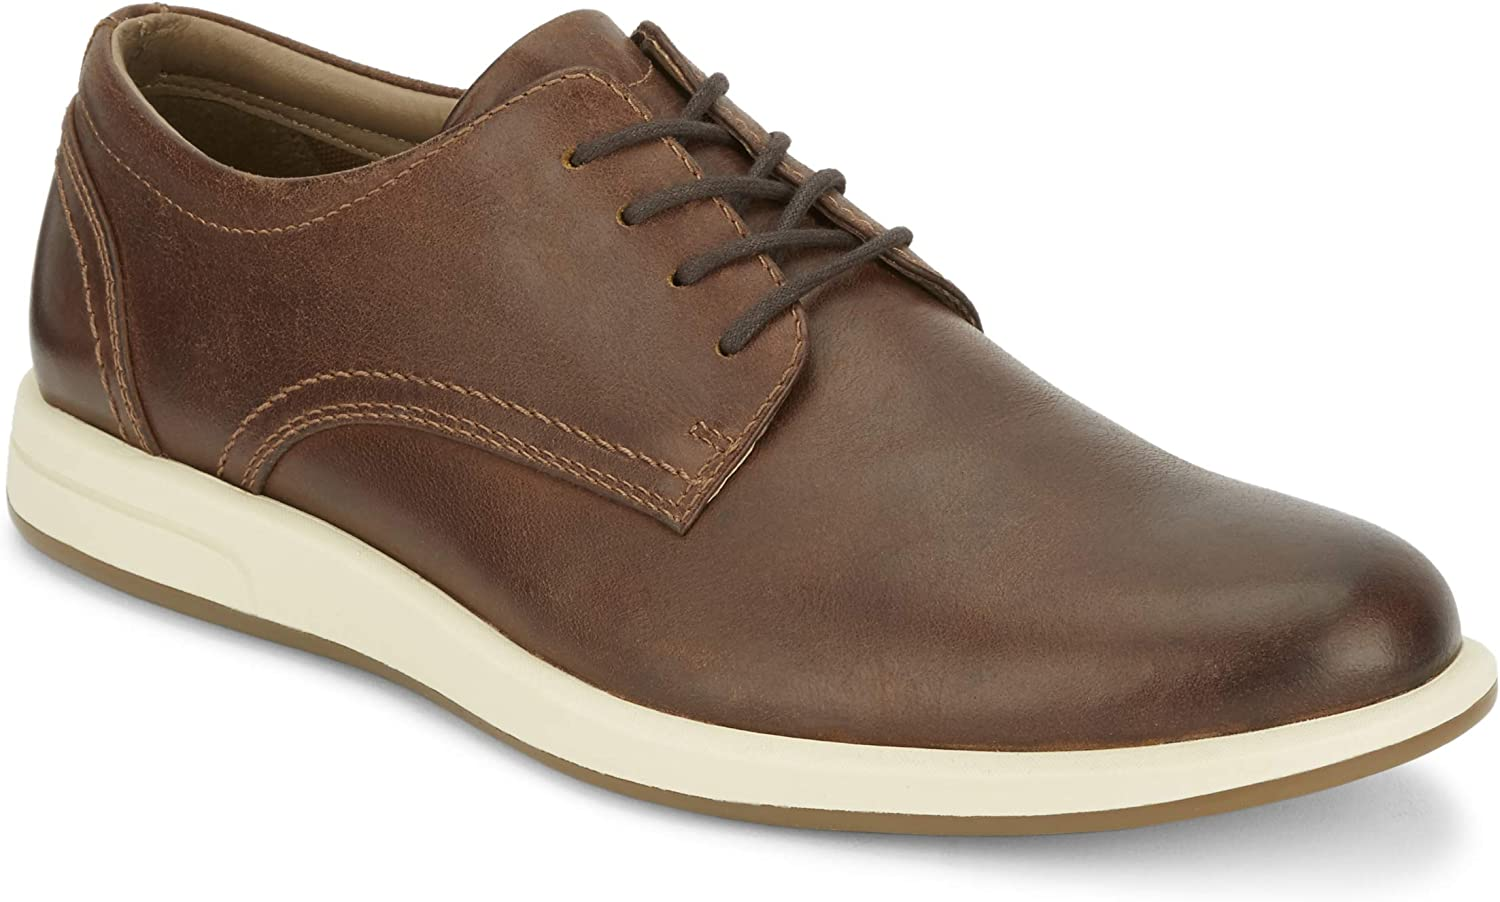 Dockers Men's Parkview Business Casual Oxford schuhe rot braun - 8.5 M